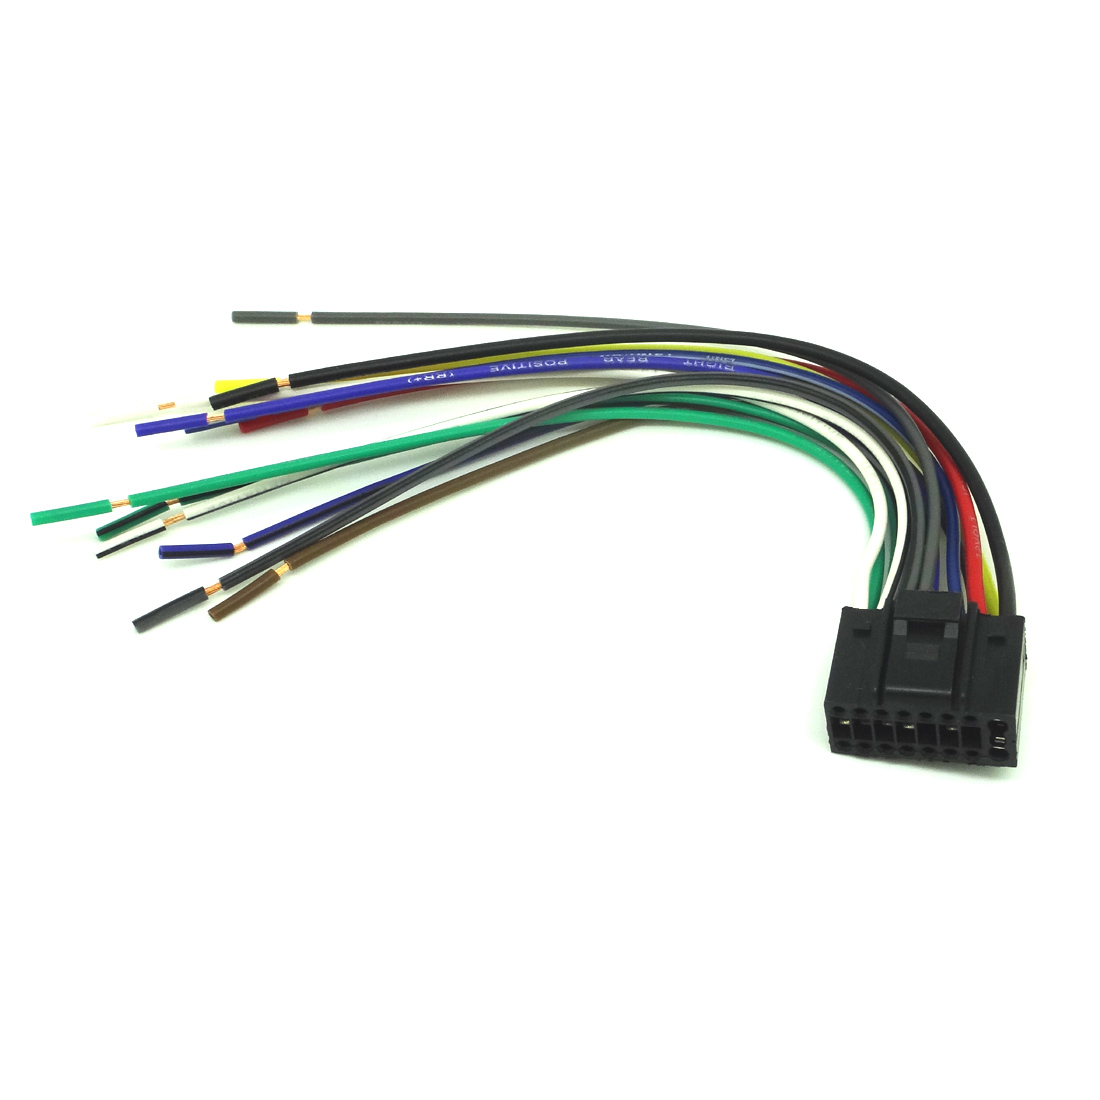 player 16 pin RADIO CAR AUDIO STEREO WIRE HARNESS for KENWOOD KDC BT855U KDC BT945U KDC kenwood kdc bt945u wiring harness diagram wiring diagrams for kenwood ddx770 wire diagram at bakdesigns.co